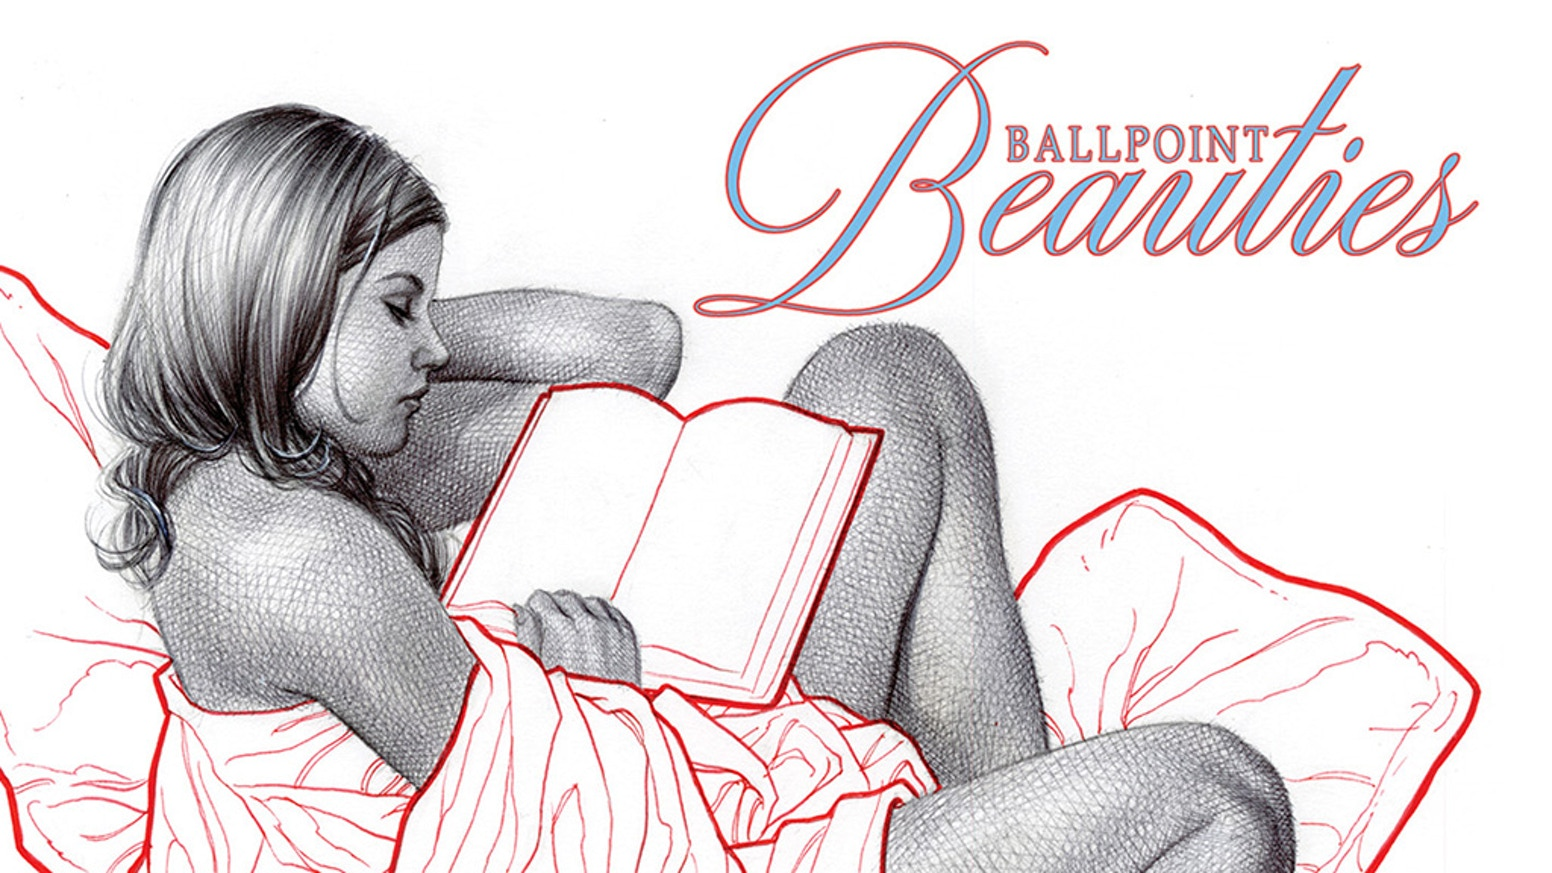 This art book reveals Frank Cho's ballpoint pen technique with step-by-step breakdowns and commentary.